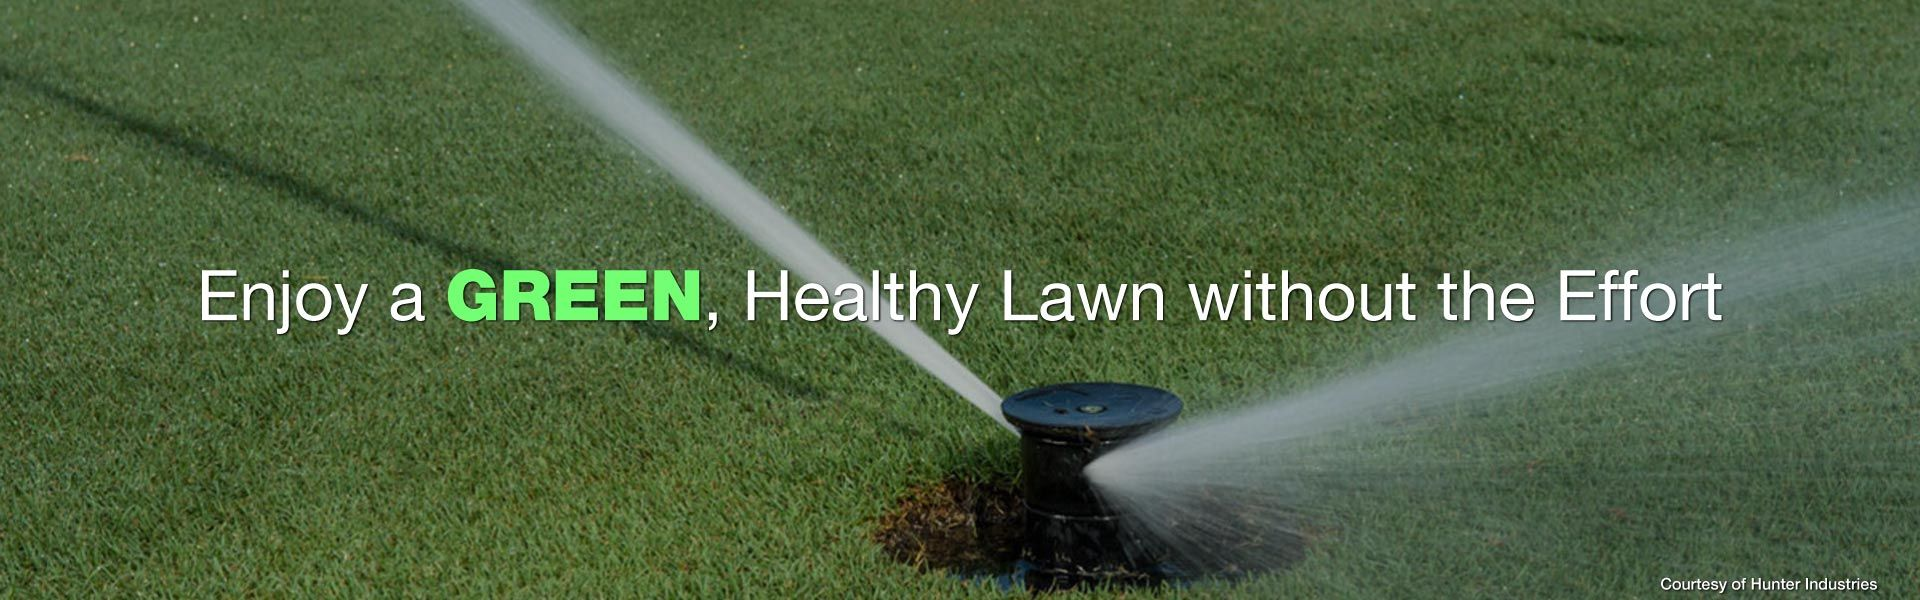 Enjoy a Green, Healthy Lawn without the Effort | Courtesy of Hunter Industries | lawn sprinklers